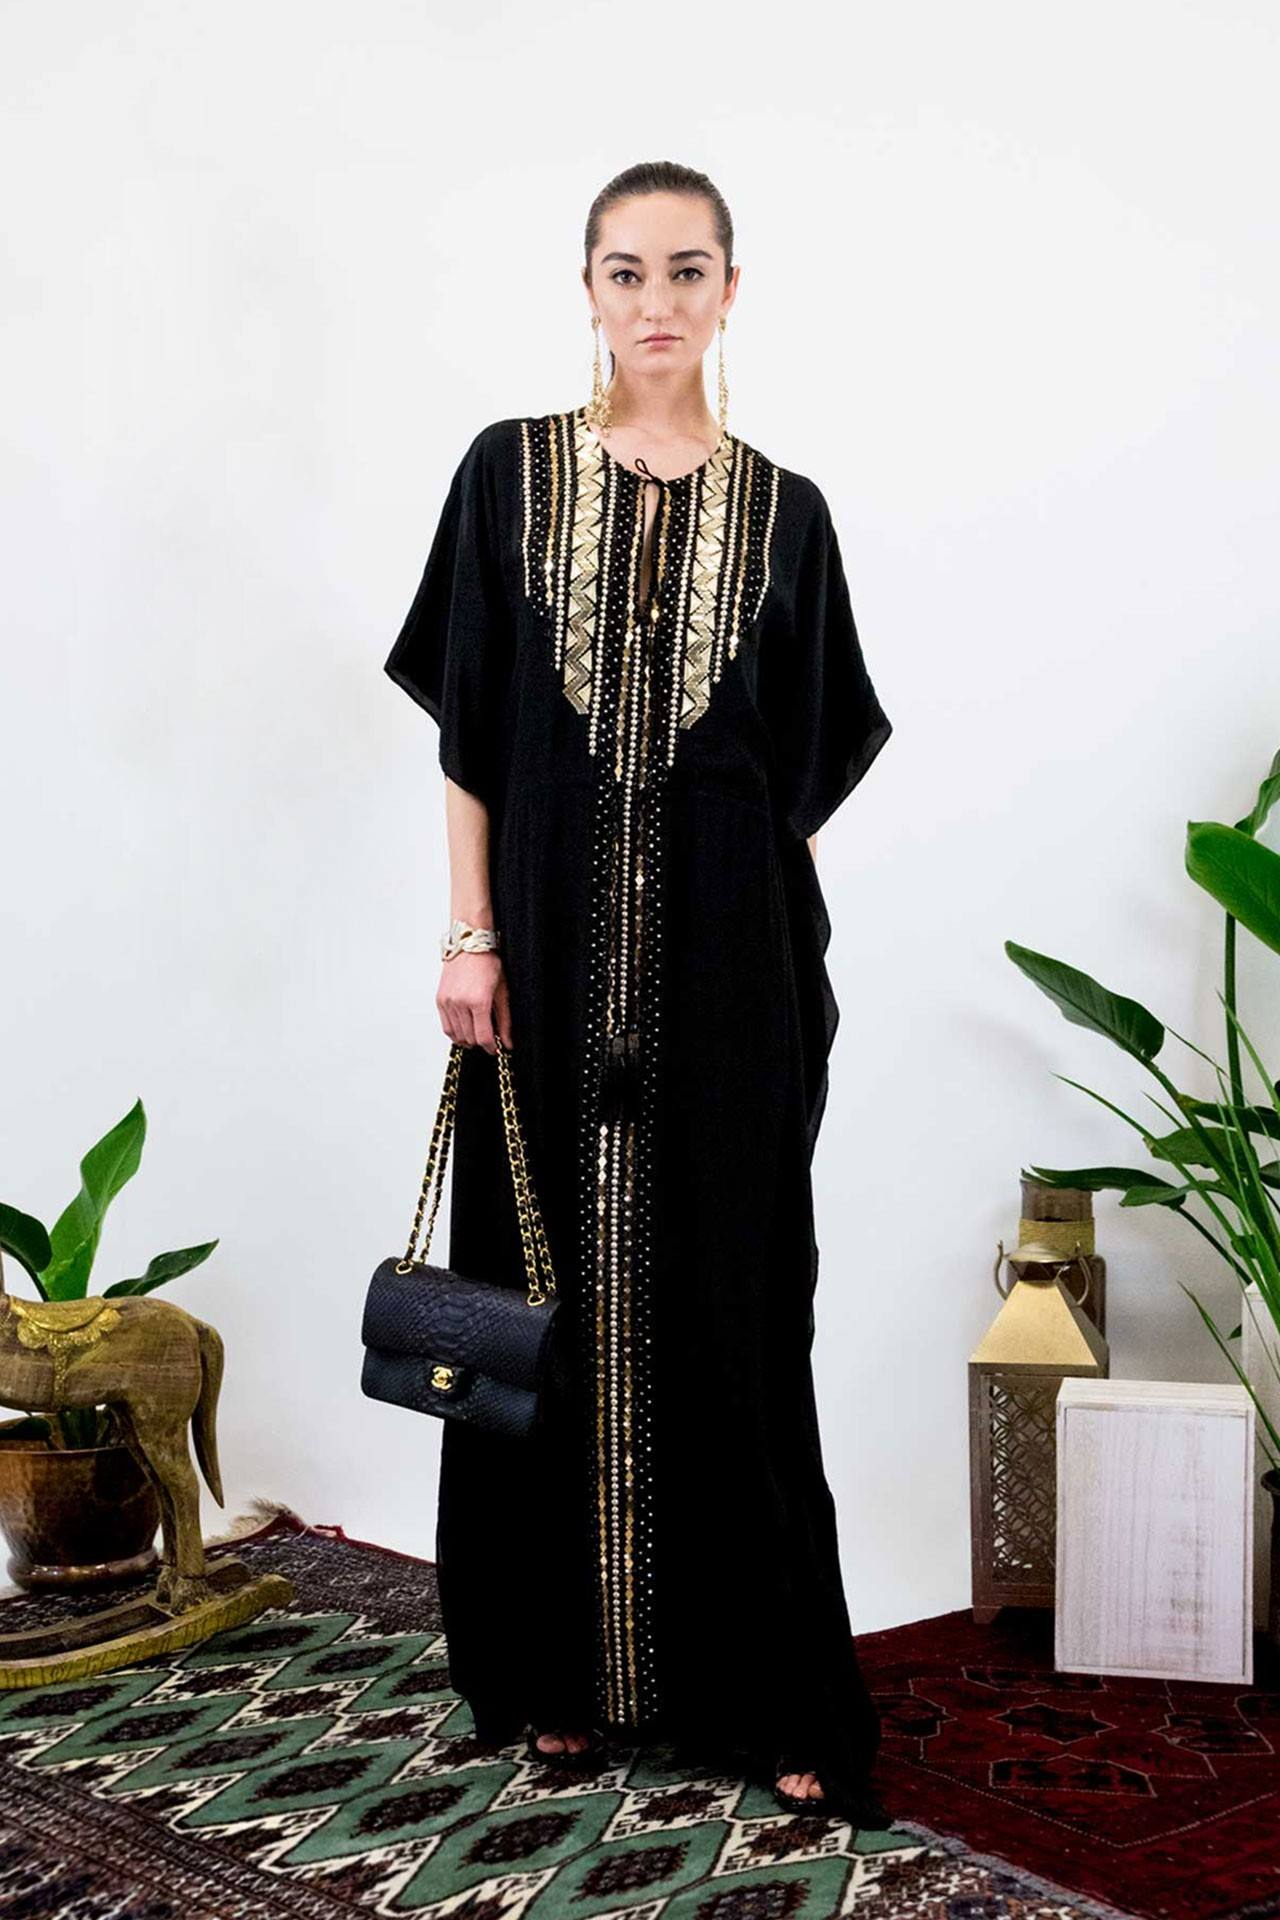 Shahida Parides releases new holiday kaftan line made fom a from soft tactile design and detailed embellishments for a luxurious feel and look.